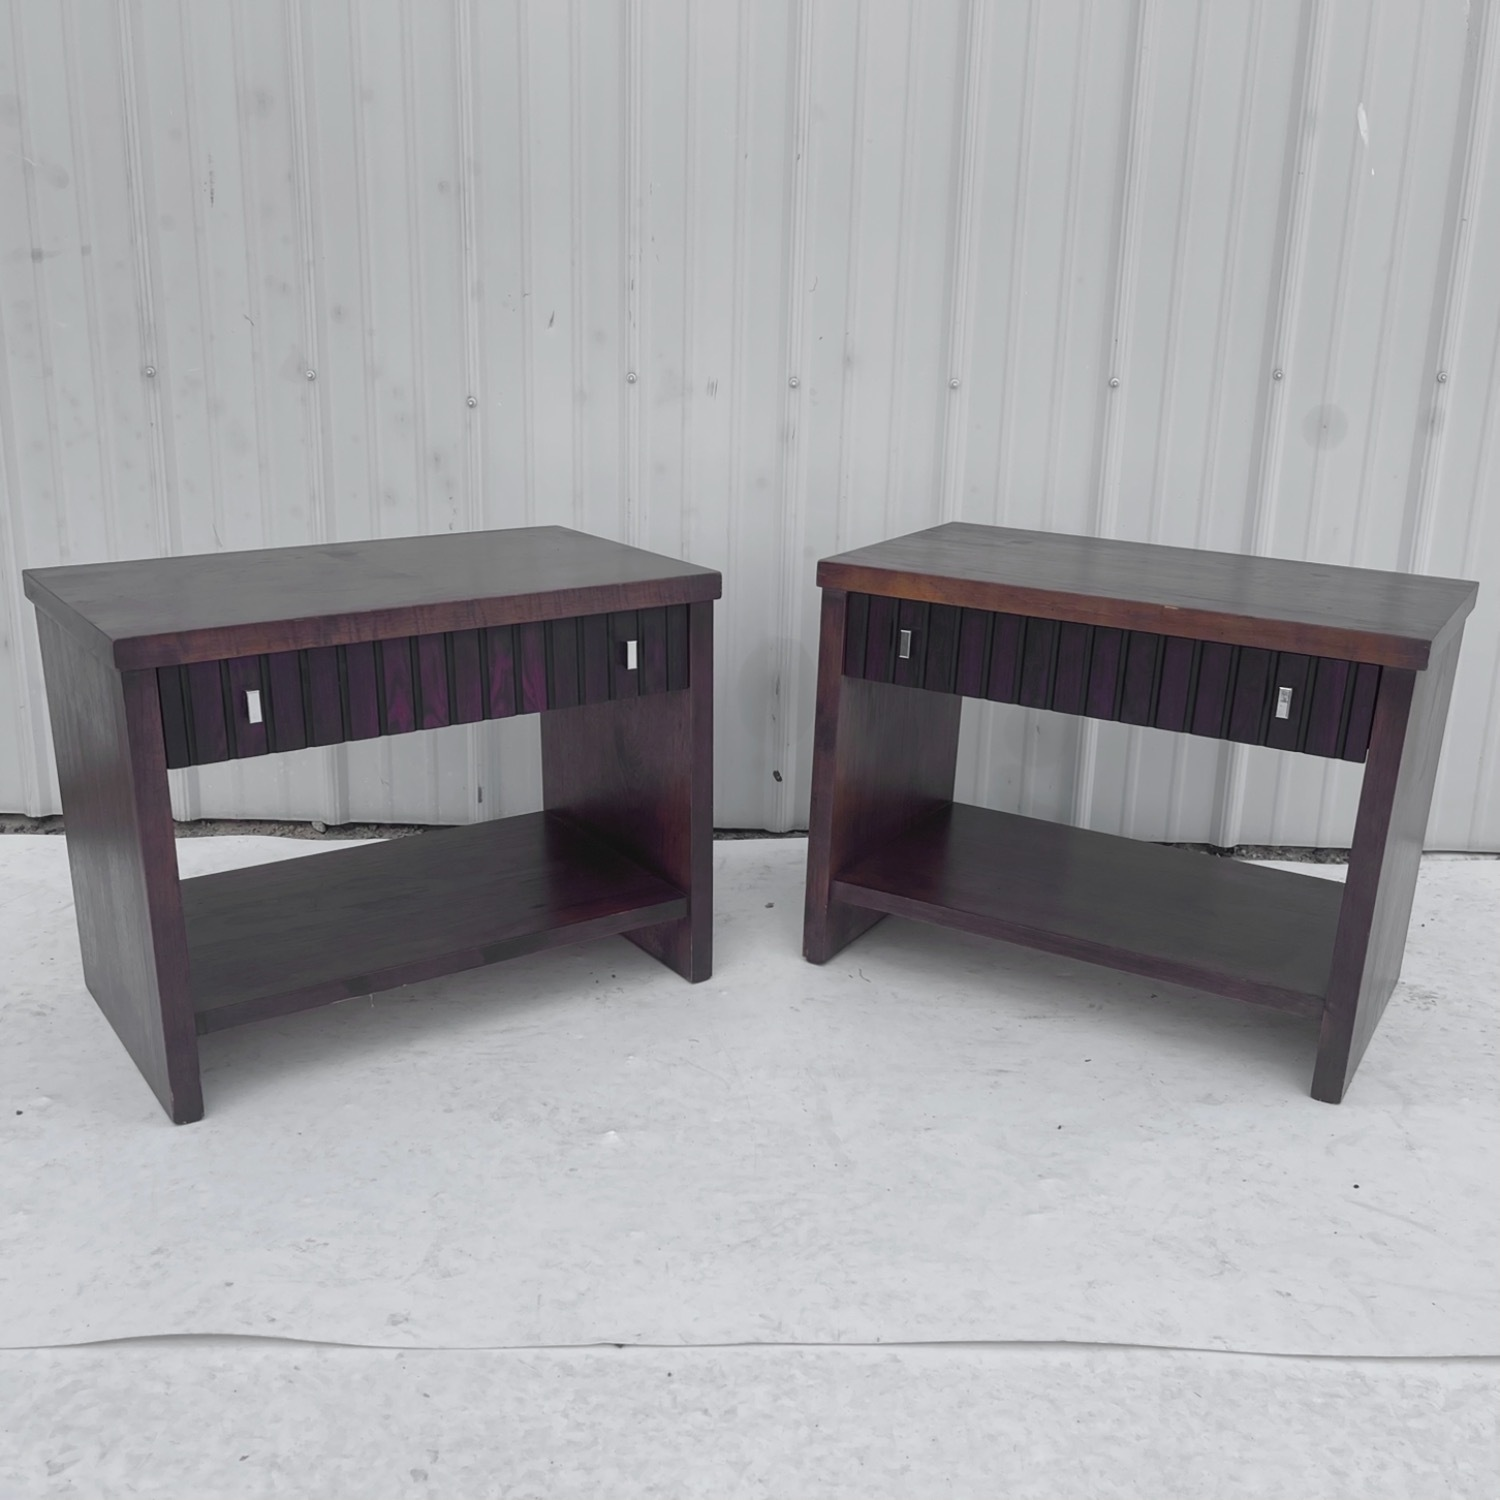 Mid-Century Nightstands by Lane Furniture - image-1